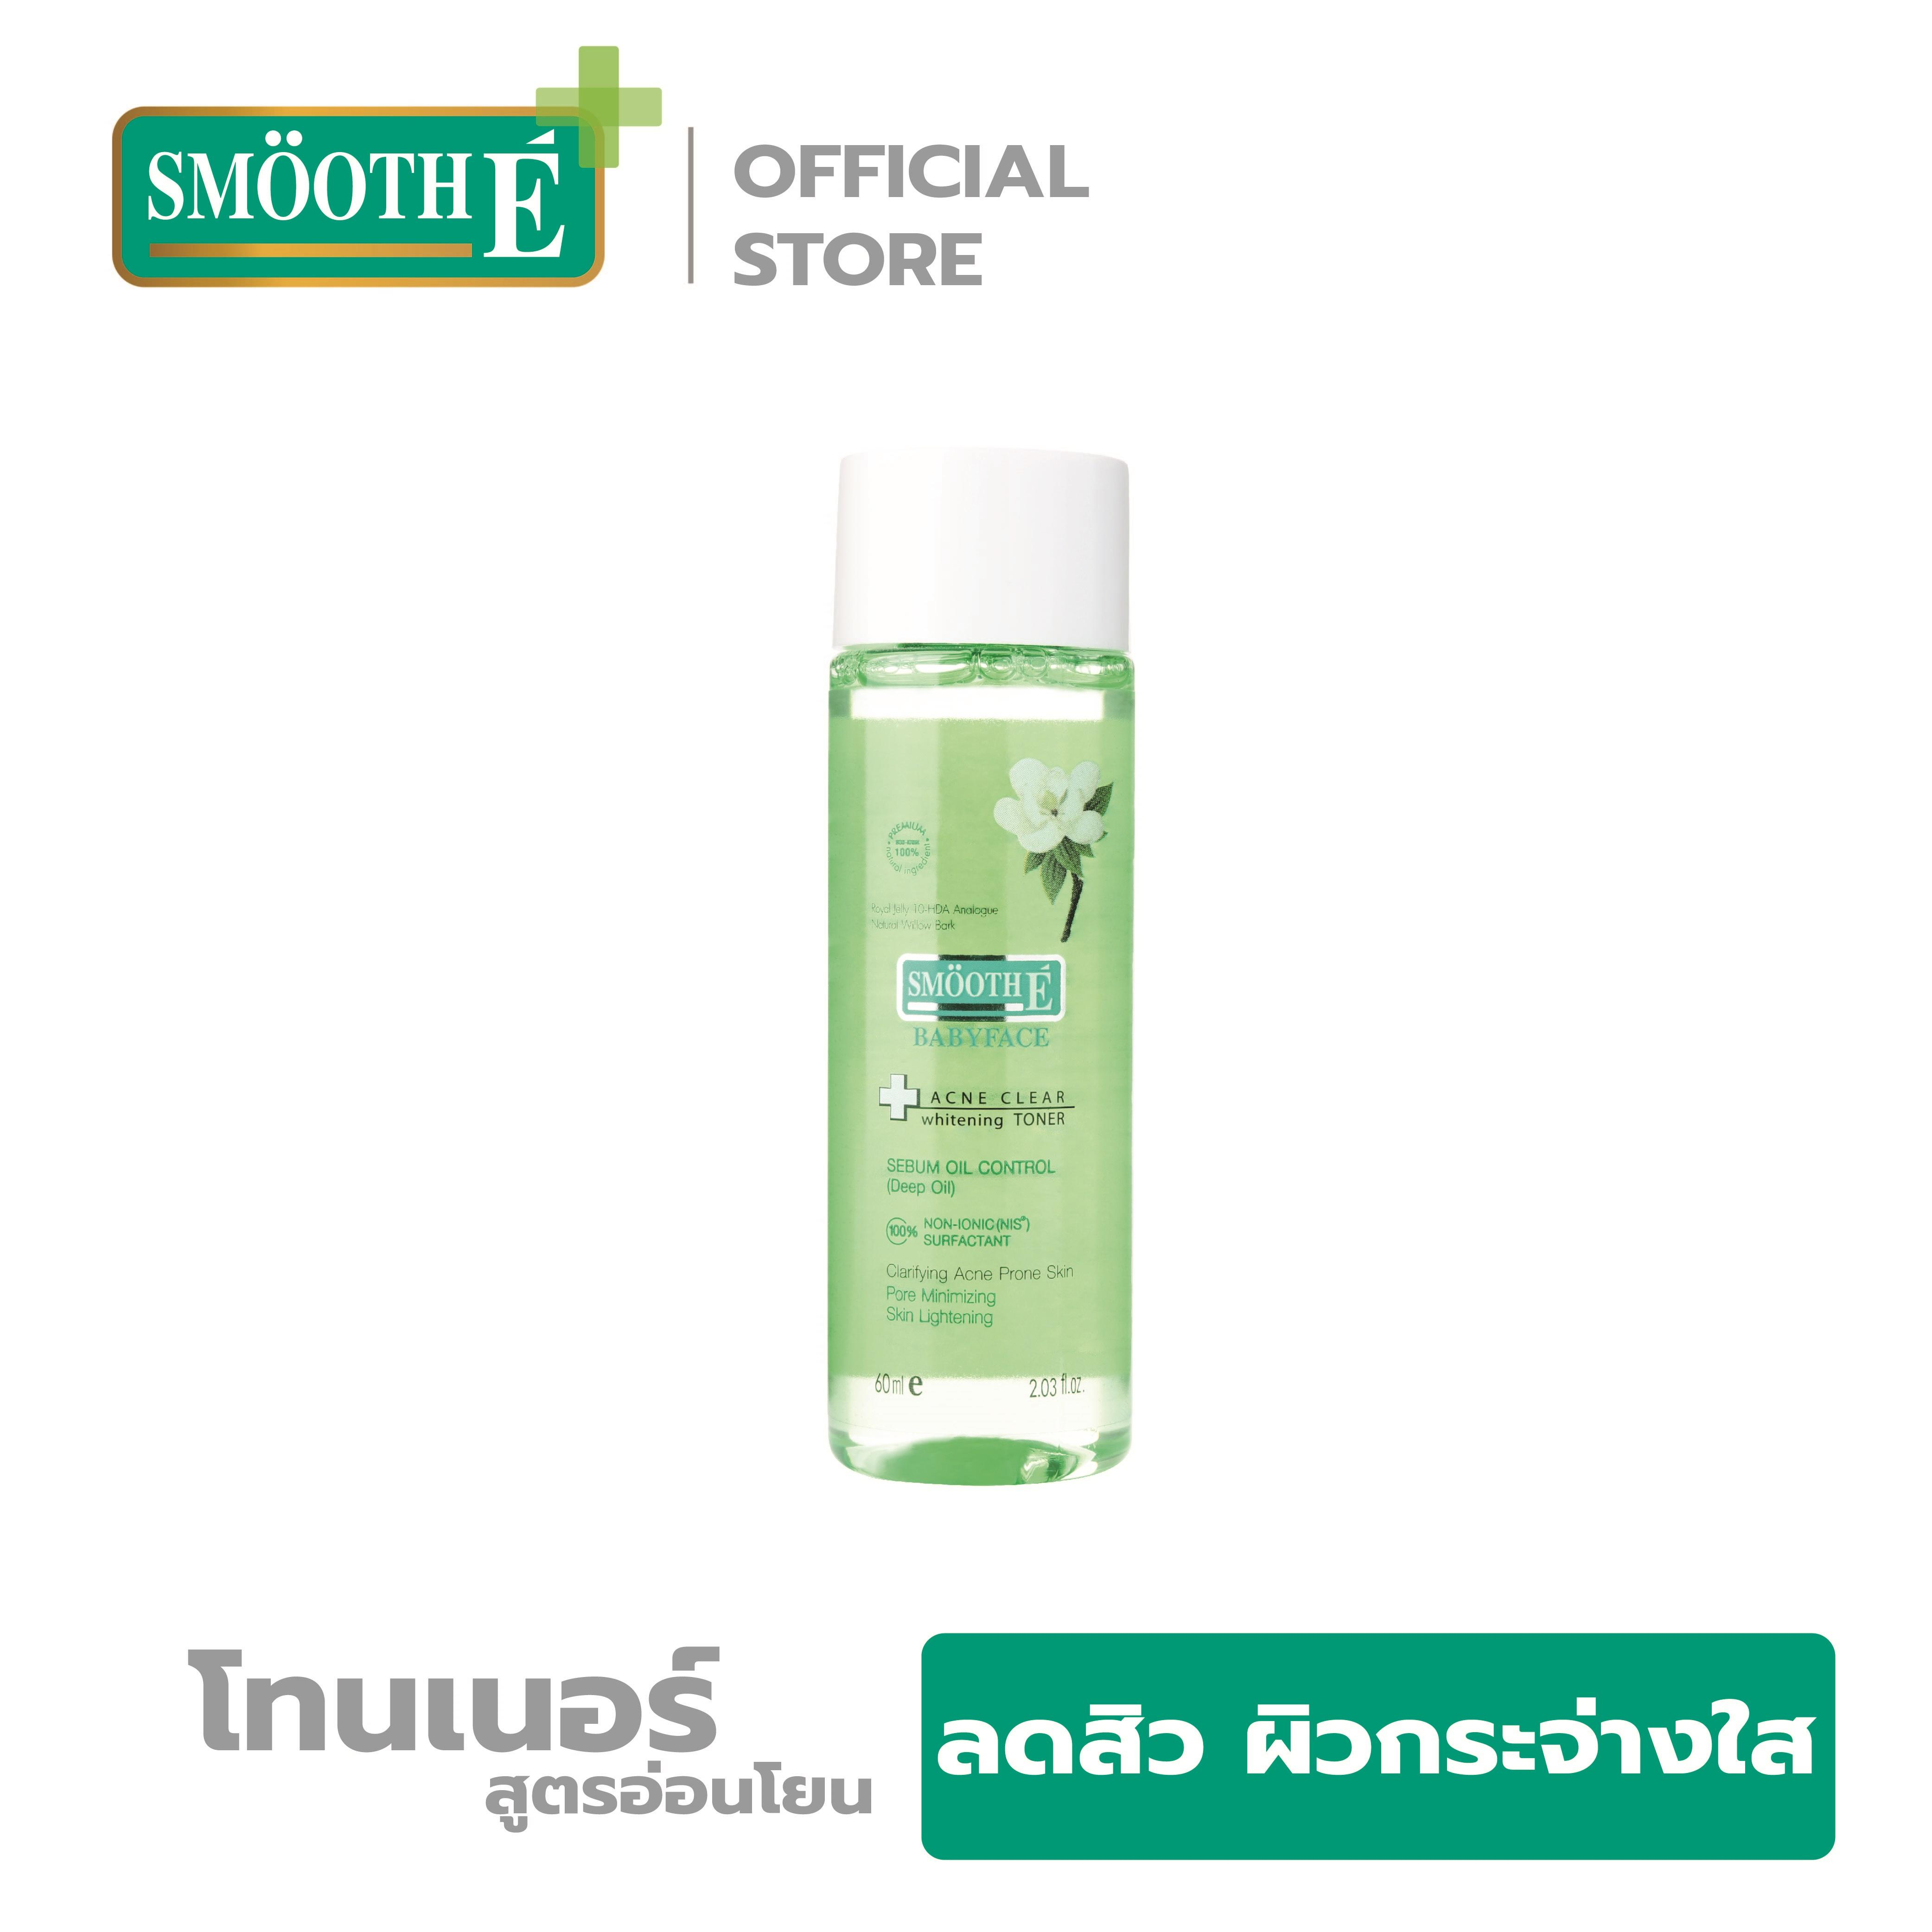 SMOOTH E ACNE CLEAR WHITENING TONER